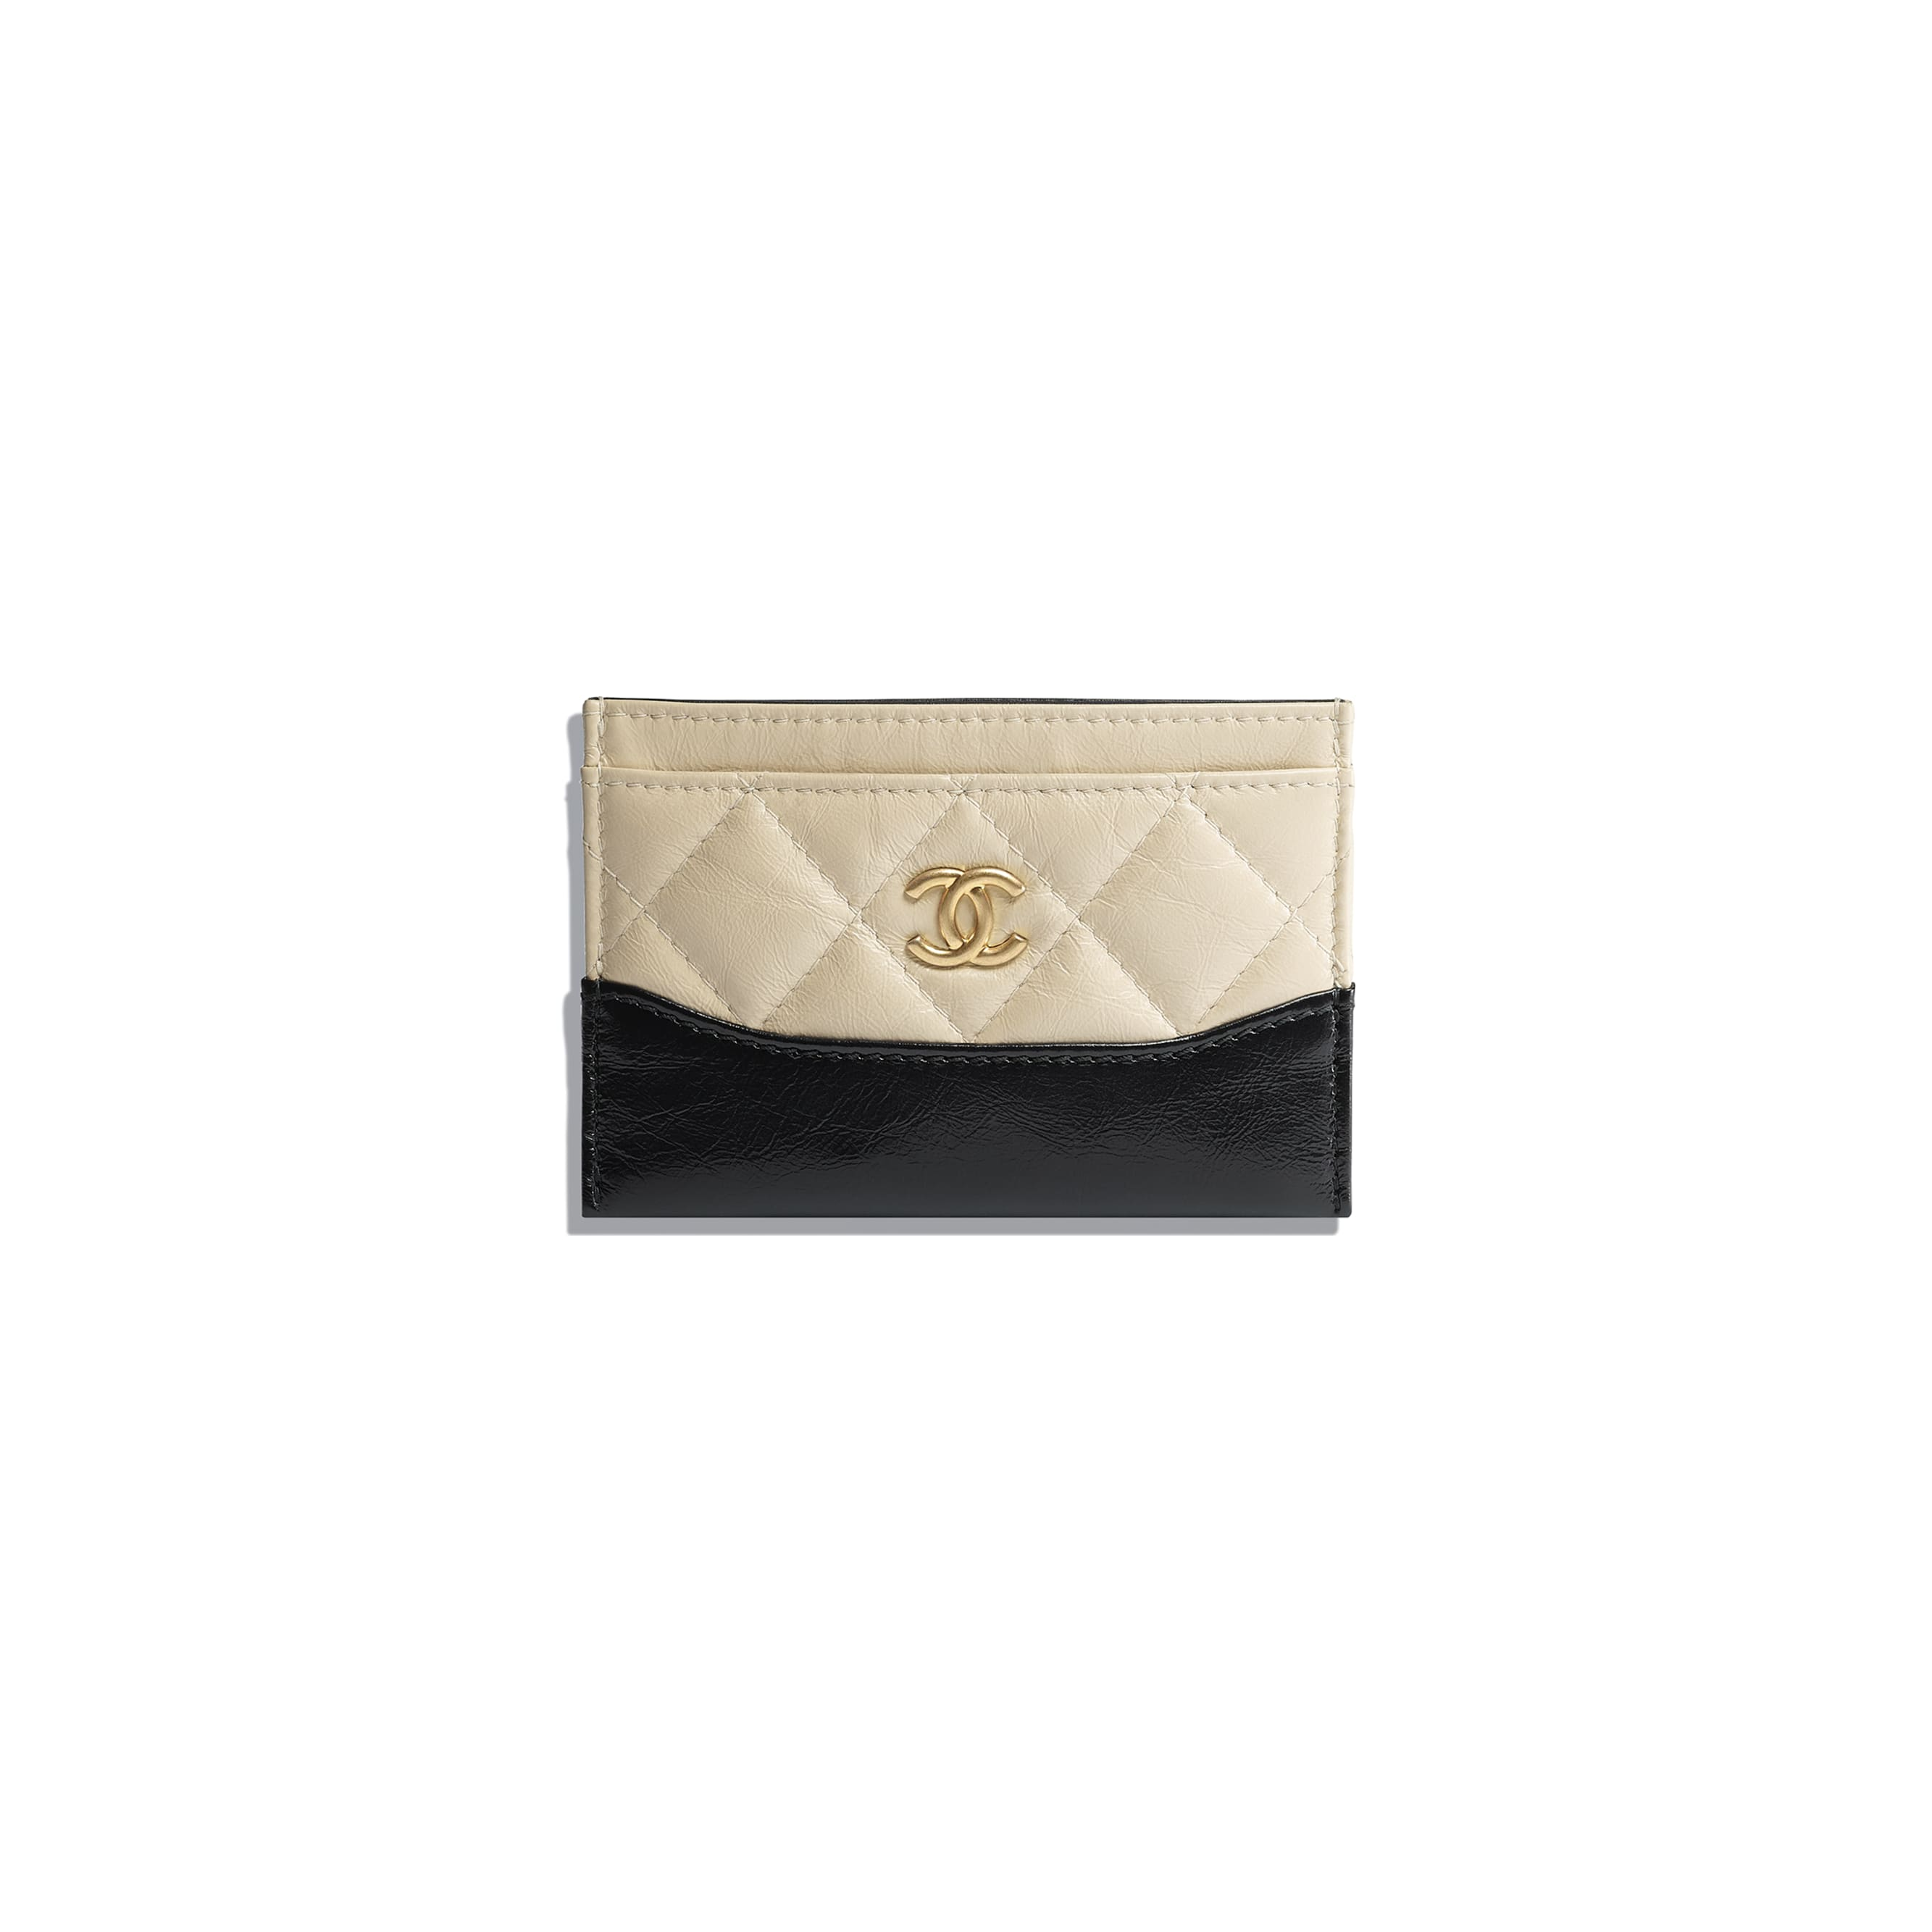 Card Holder - Beige & Black - Aged Calfskin, Smooth Calfskin, Silver-Tone & Gold-Tone Metal - Default view - see standard sized version